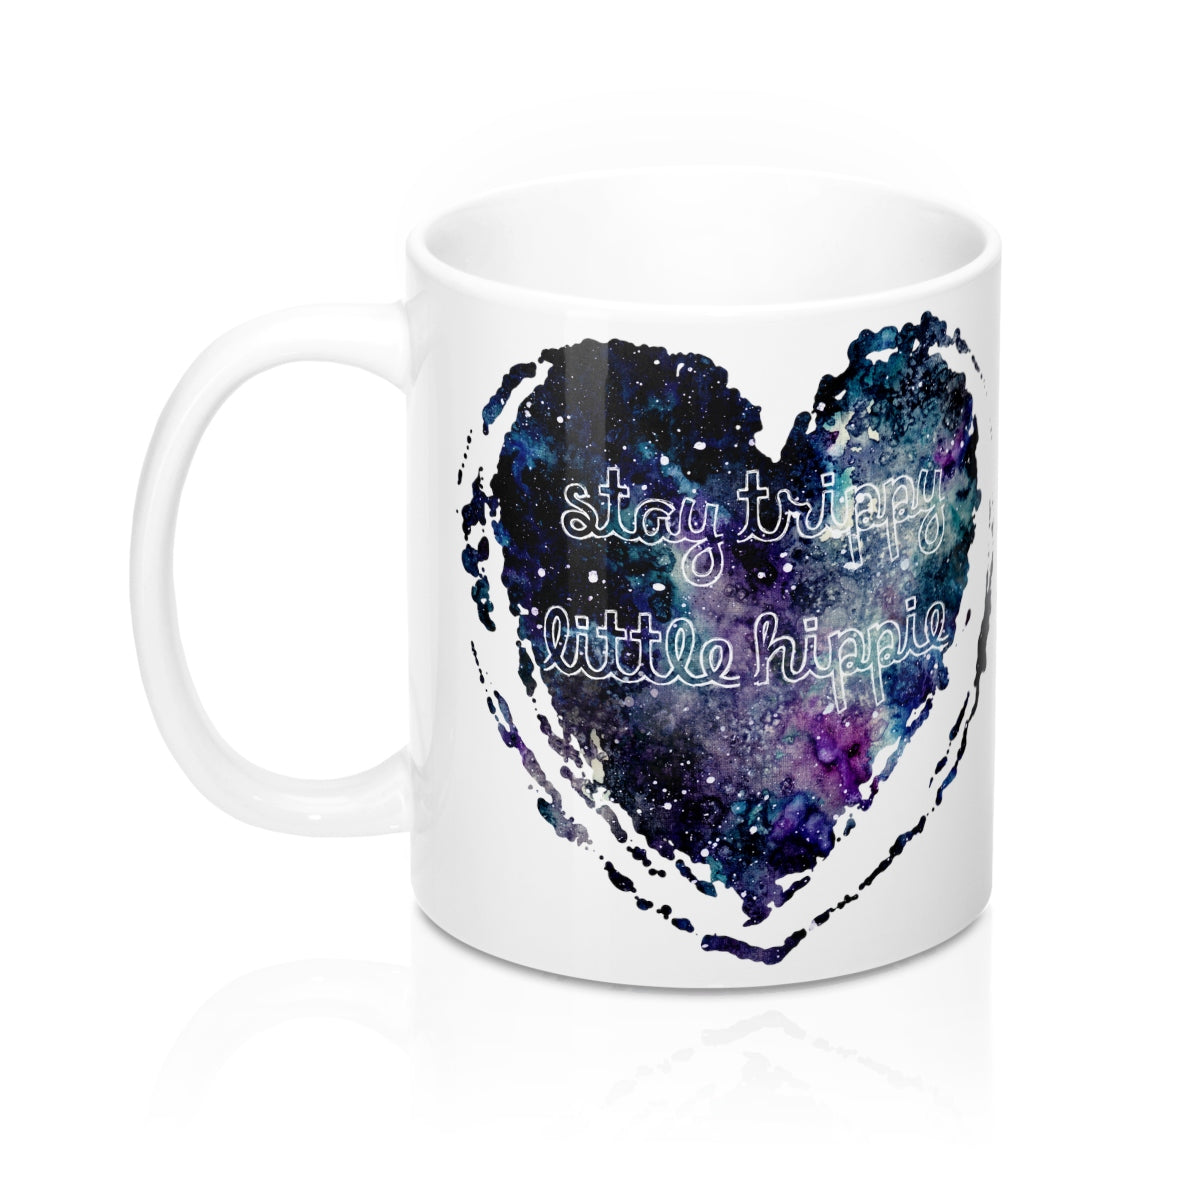 Stay Trippy Little Hippie Coffee Cup, Stay Trippy Little Hippie Mug, 11oz Coffee Cup, 11 oz Coffee Mug, Stay Trippy Little Hippie - jewelry-by-meesh